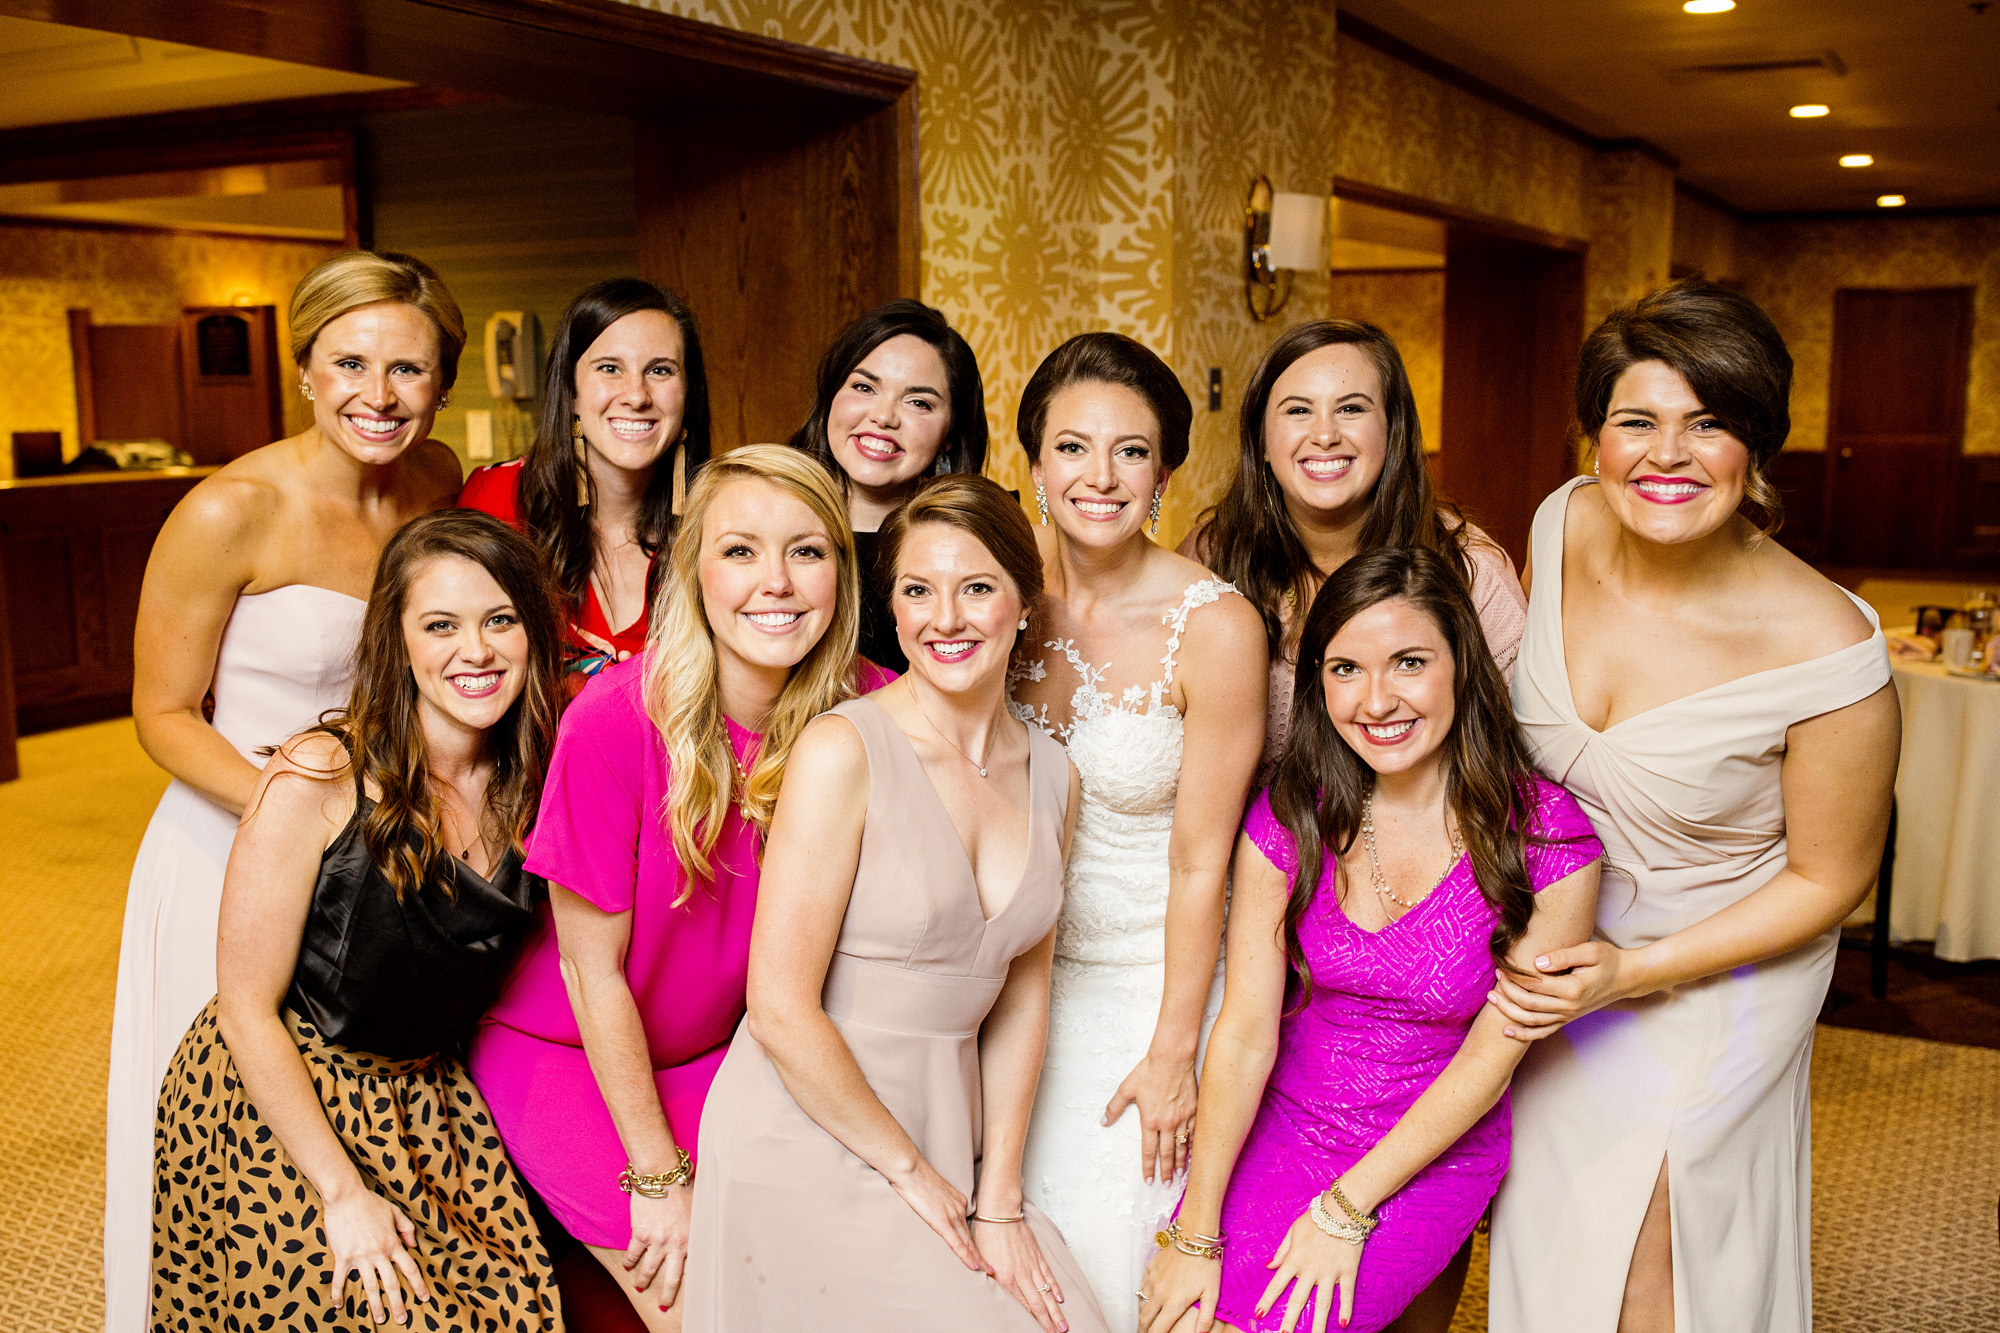 Seriously_Sabrina_Photography_Lexington_Kentucky_Downtown_Keeneland_Clubhouse_Wedding_Spitzer_131.jpg